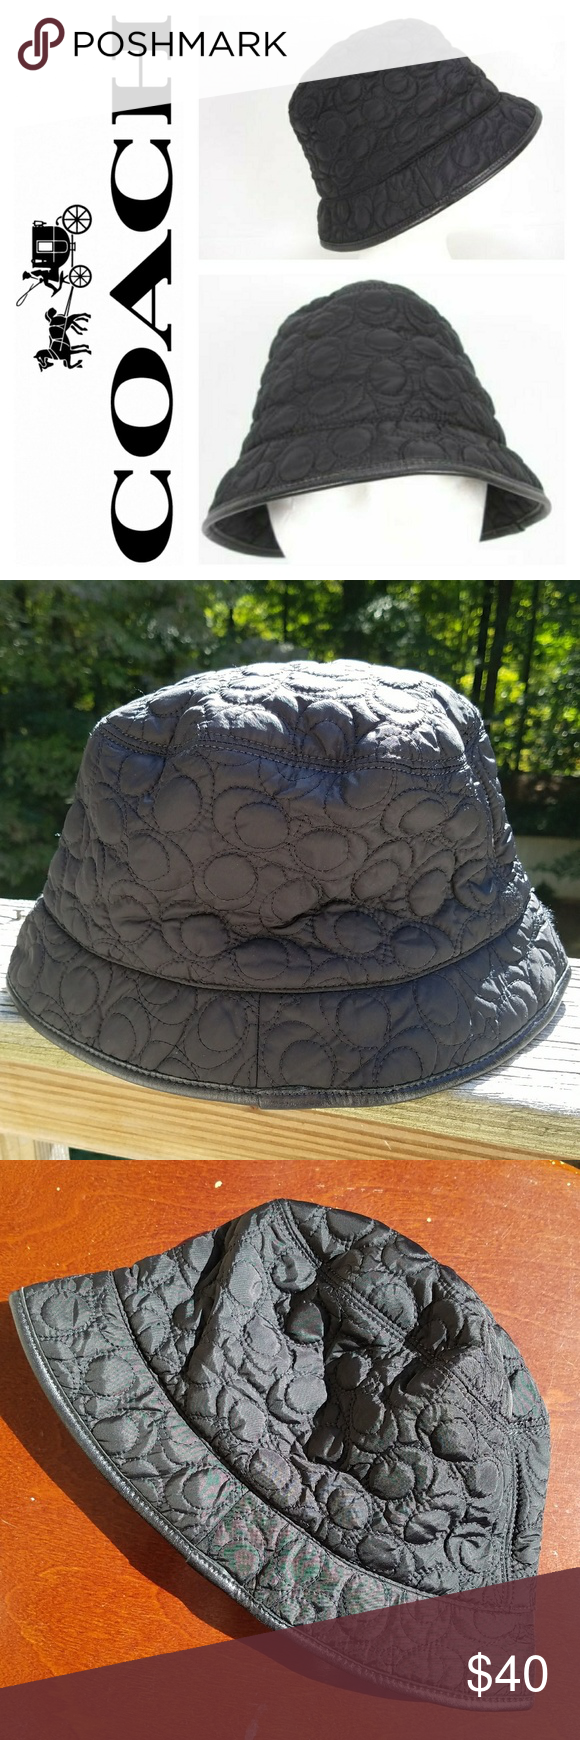 5ef4eec5834cf Coach Quilted Black Signature C Bucket Rain Hat A jaunty little authentic  hat from Coach. Hat is quilted and has leather trim and is lined.